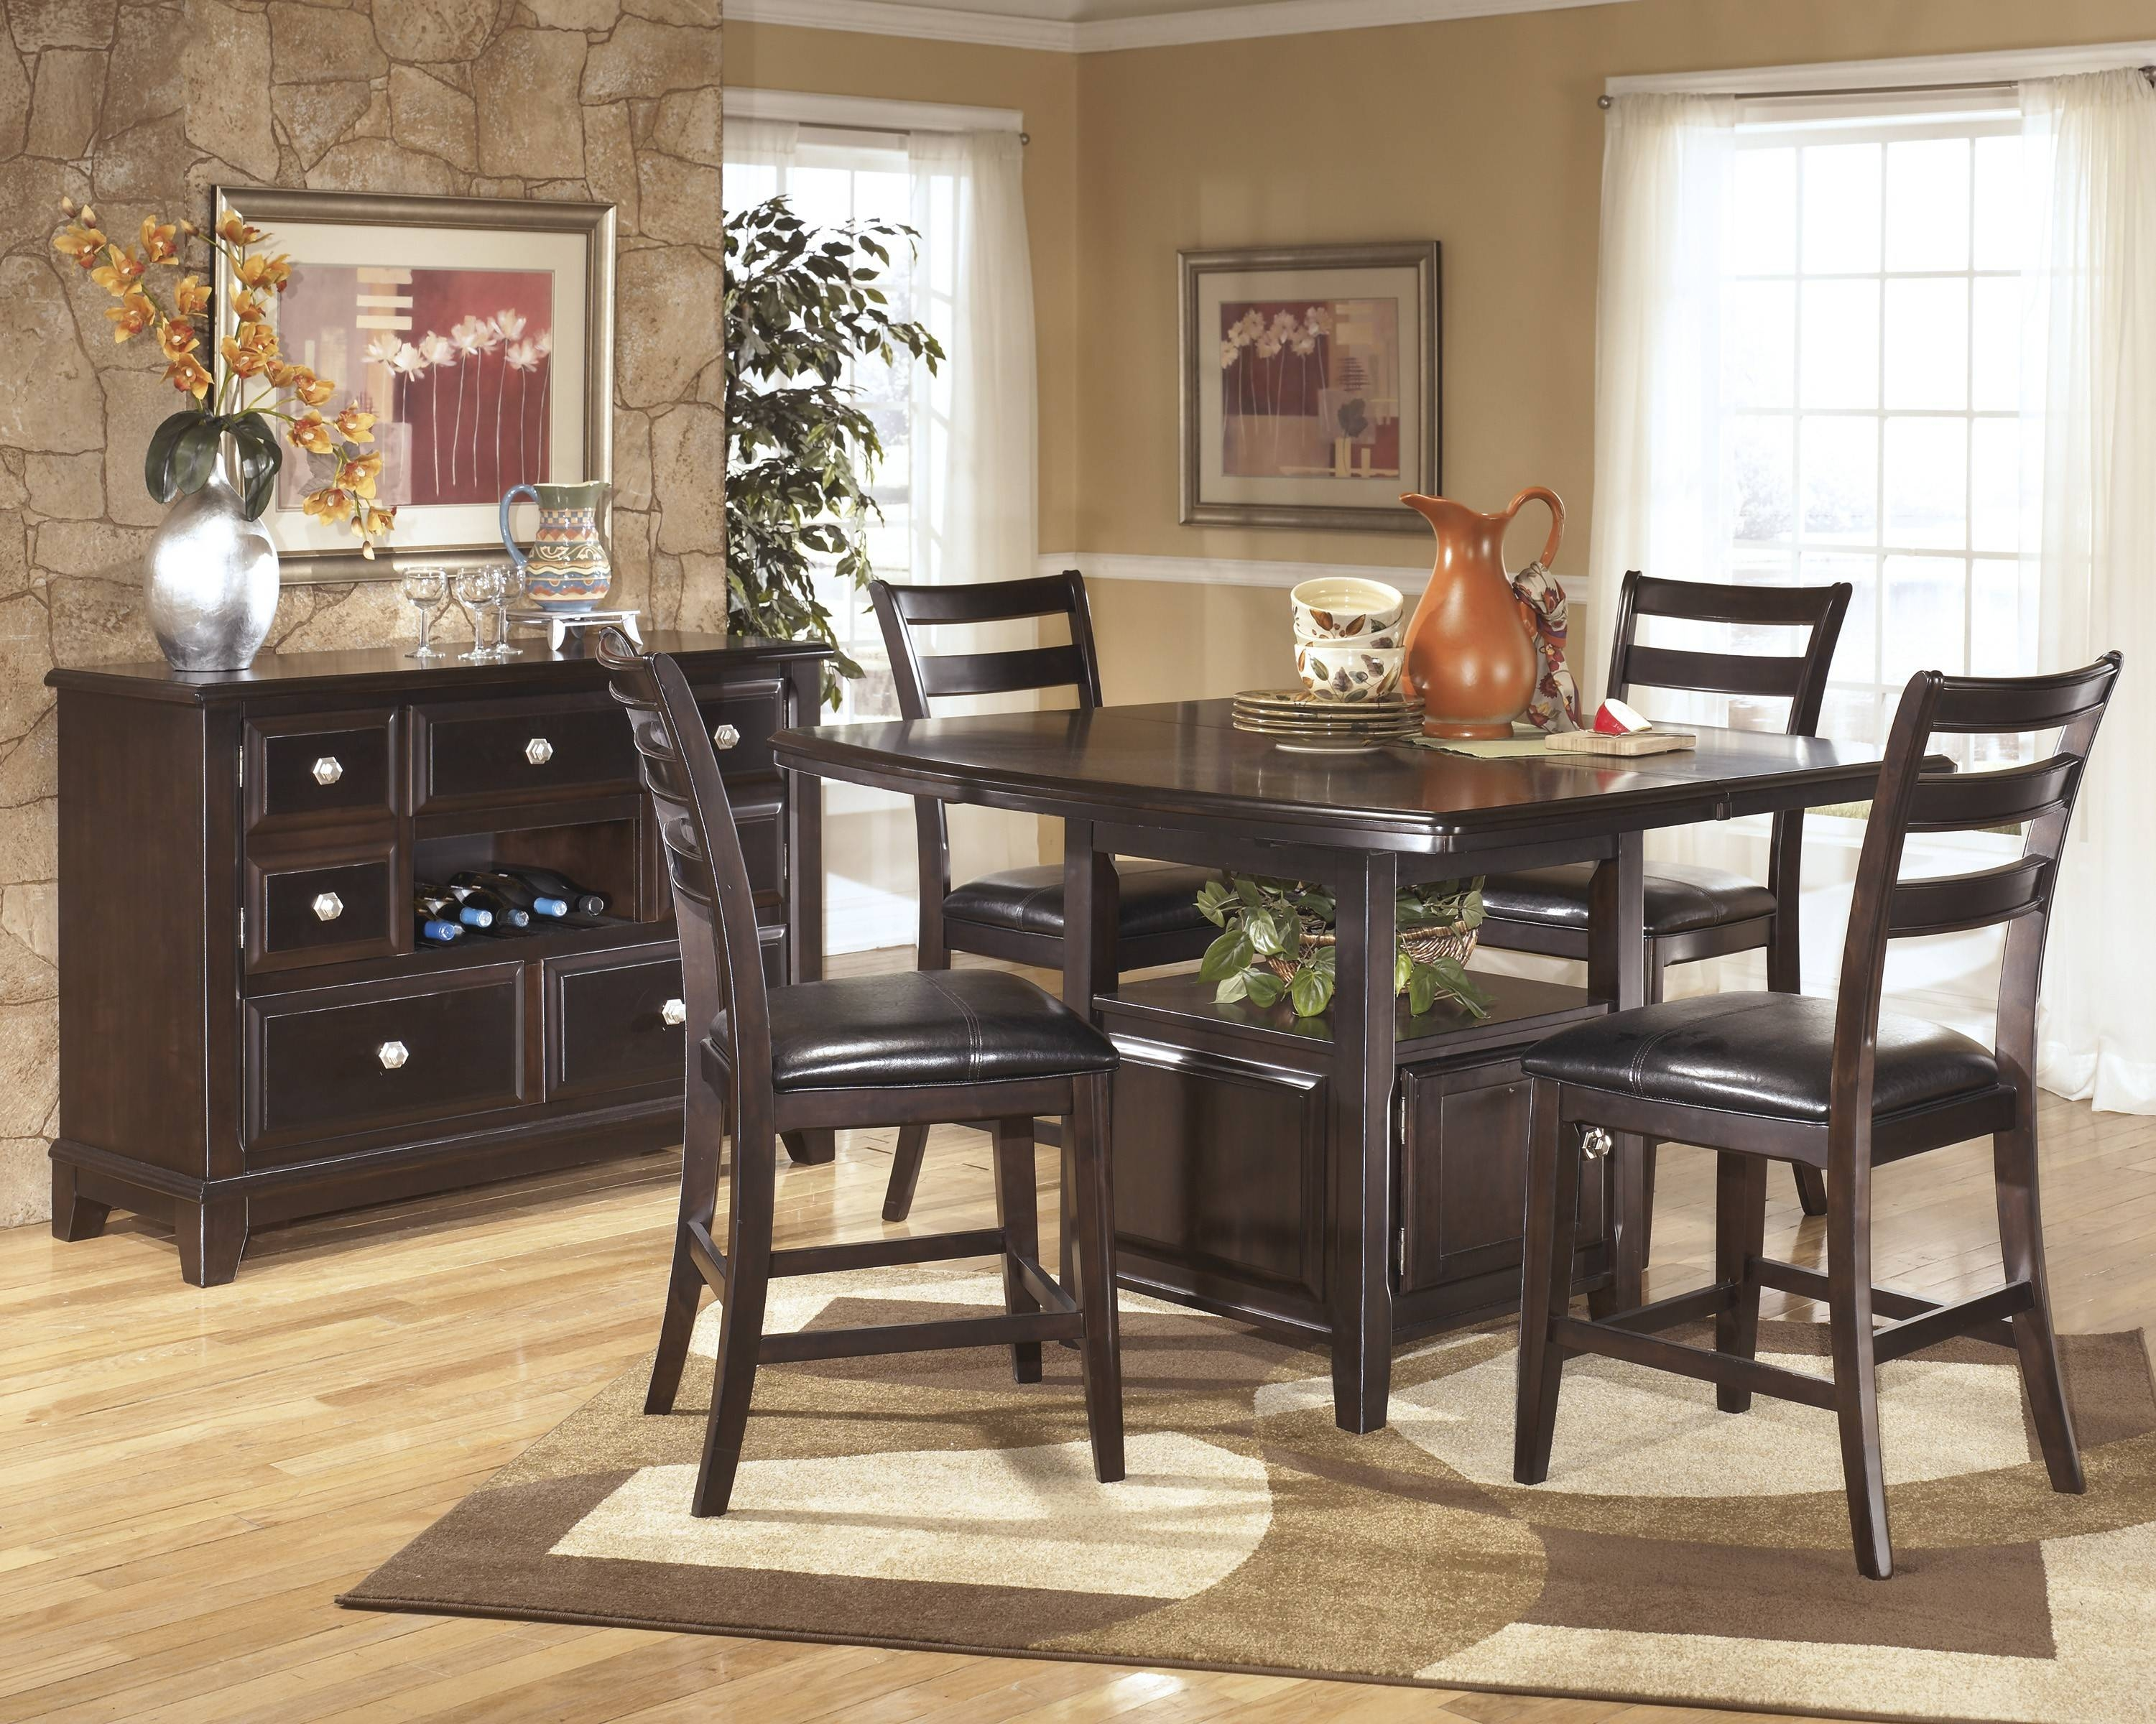 Ridgley Dark Brown 6 Pc Counter Height Dining Table Barstools And with regard to Black Dining Room Sideboards (Image 13 of 15)